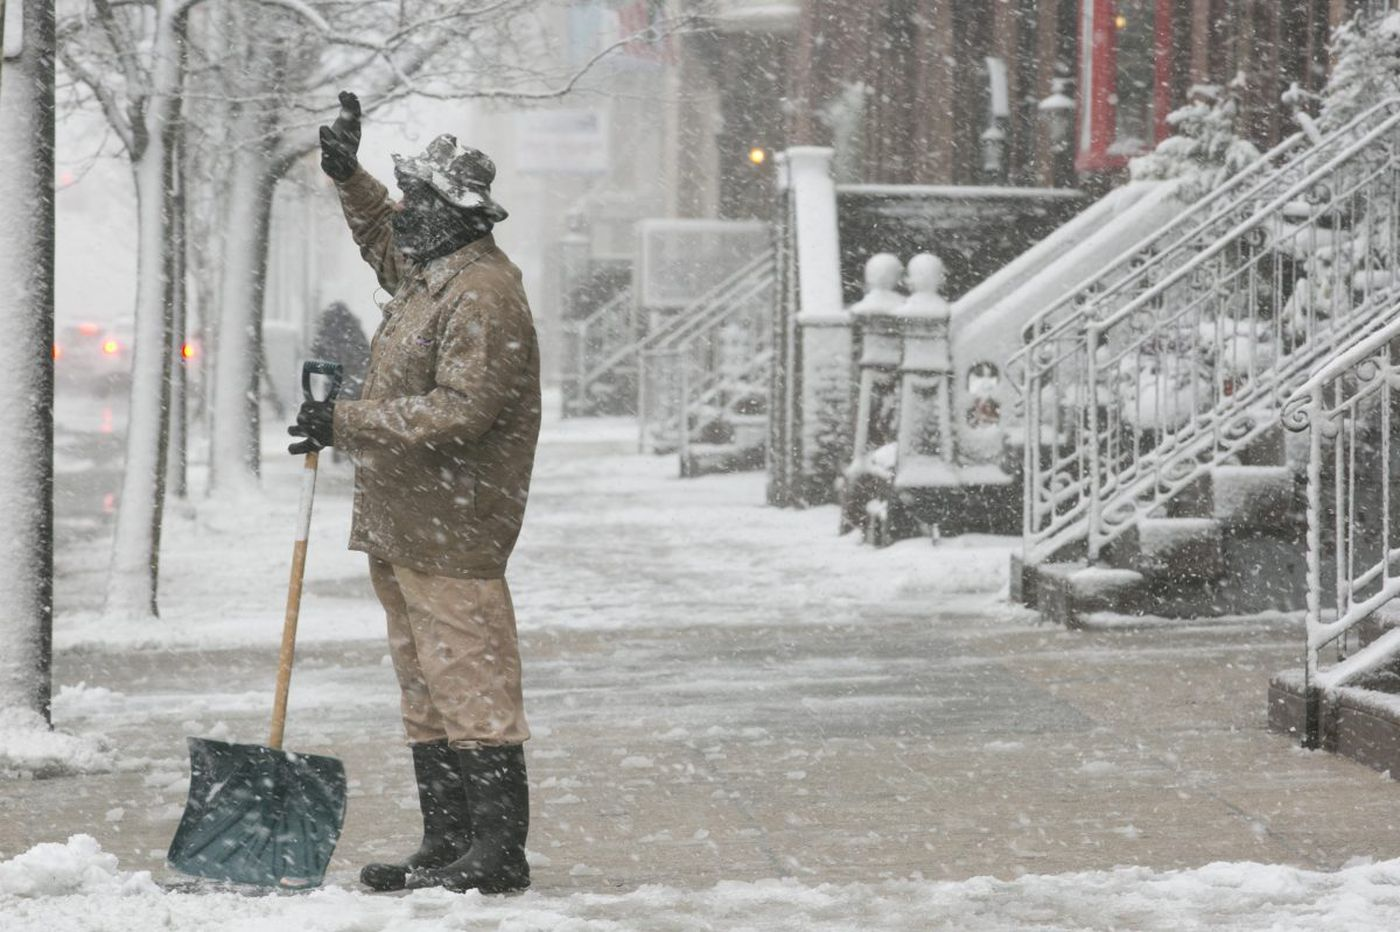 Mild winter remains good bet, feds say